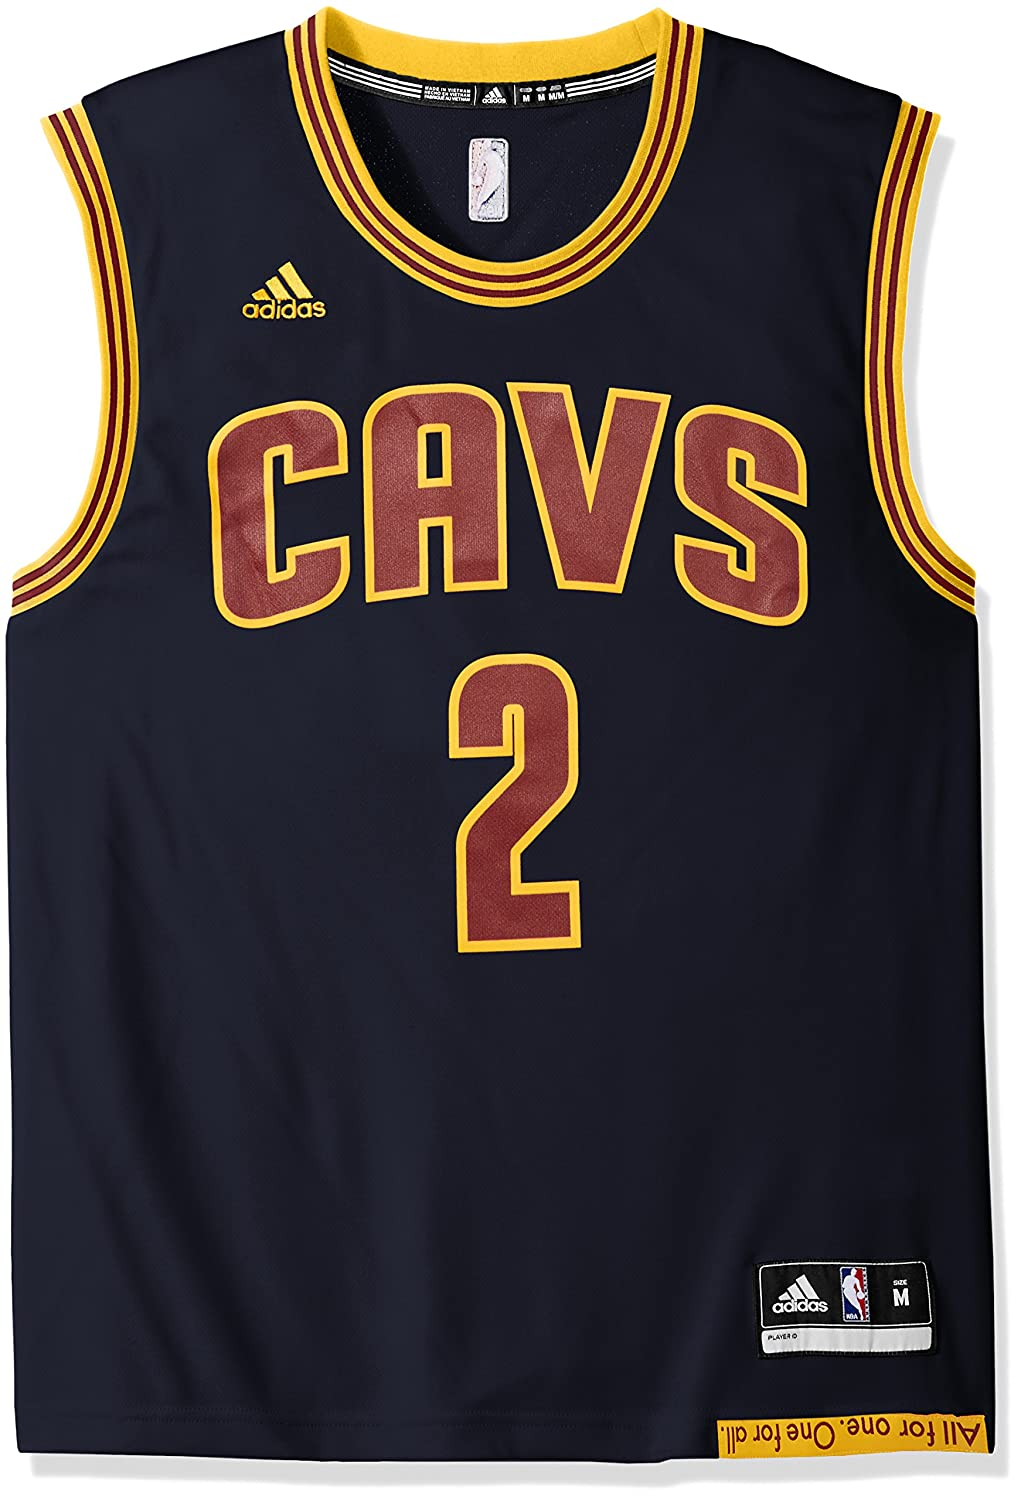 Nba cleveland cavaliers kyrie irving mens replica jersey large navy sports  outdoors jpg 1021x1500 Cavs home c83921ef0